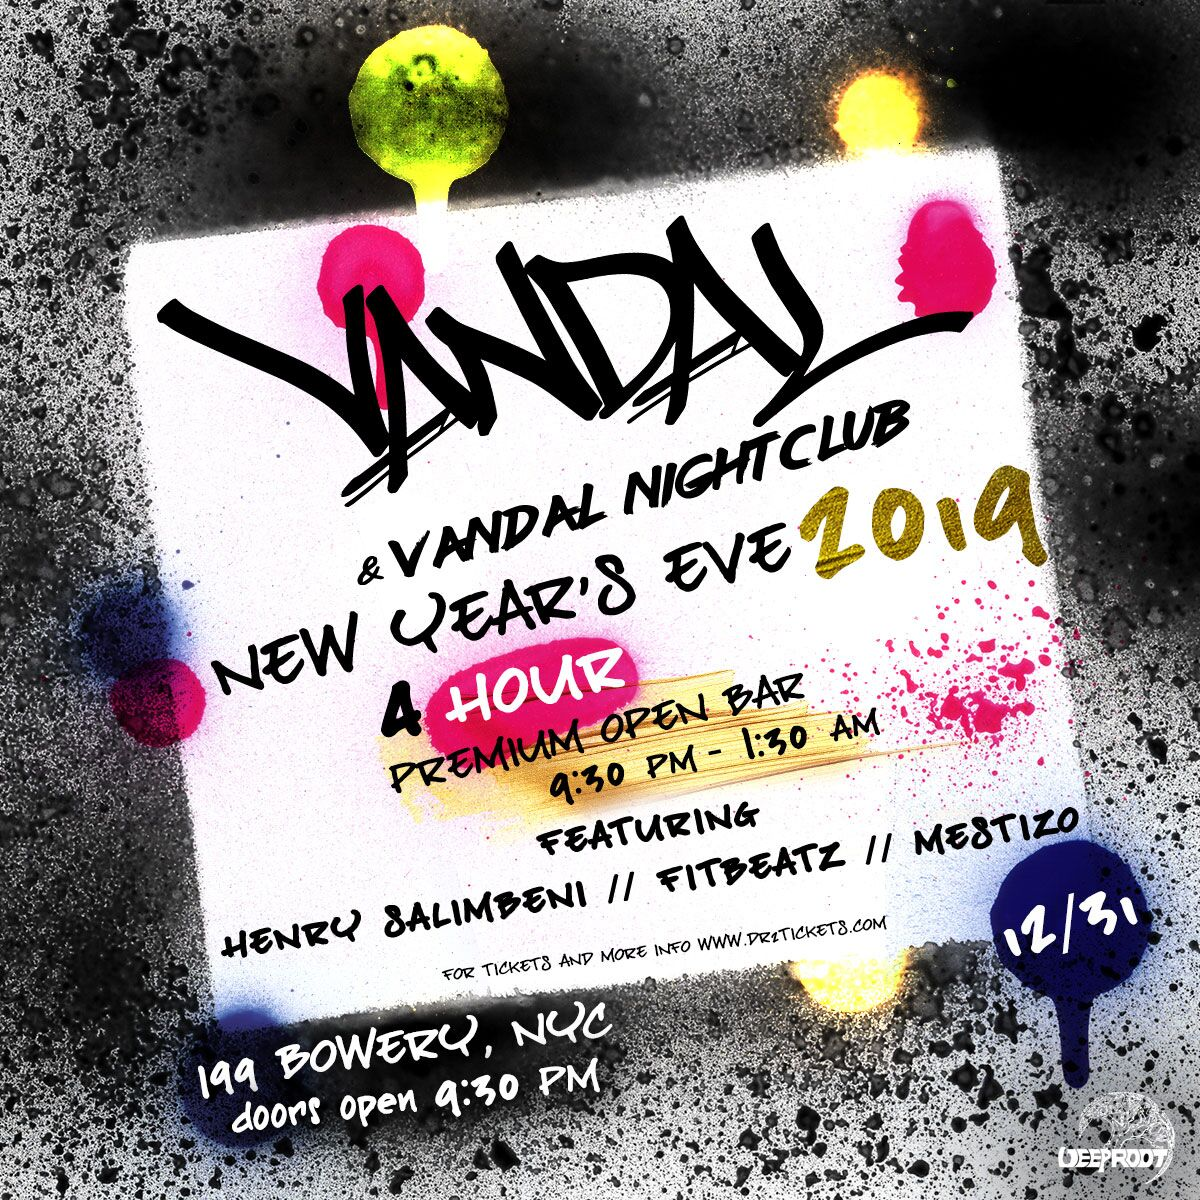 NYE 2019 At Vandal – 5 Hour Open Bar